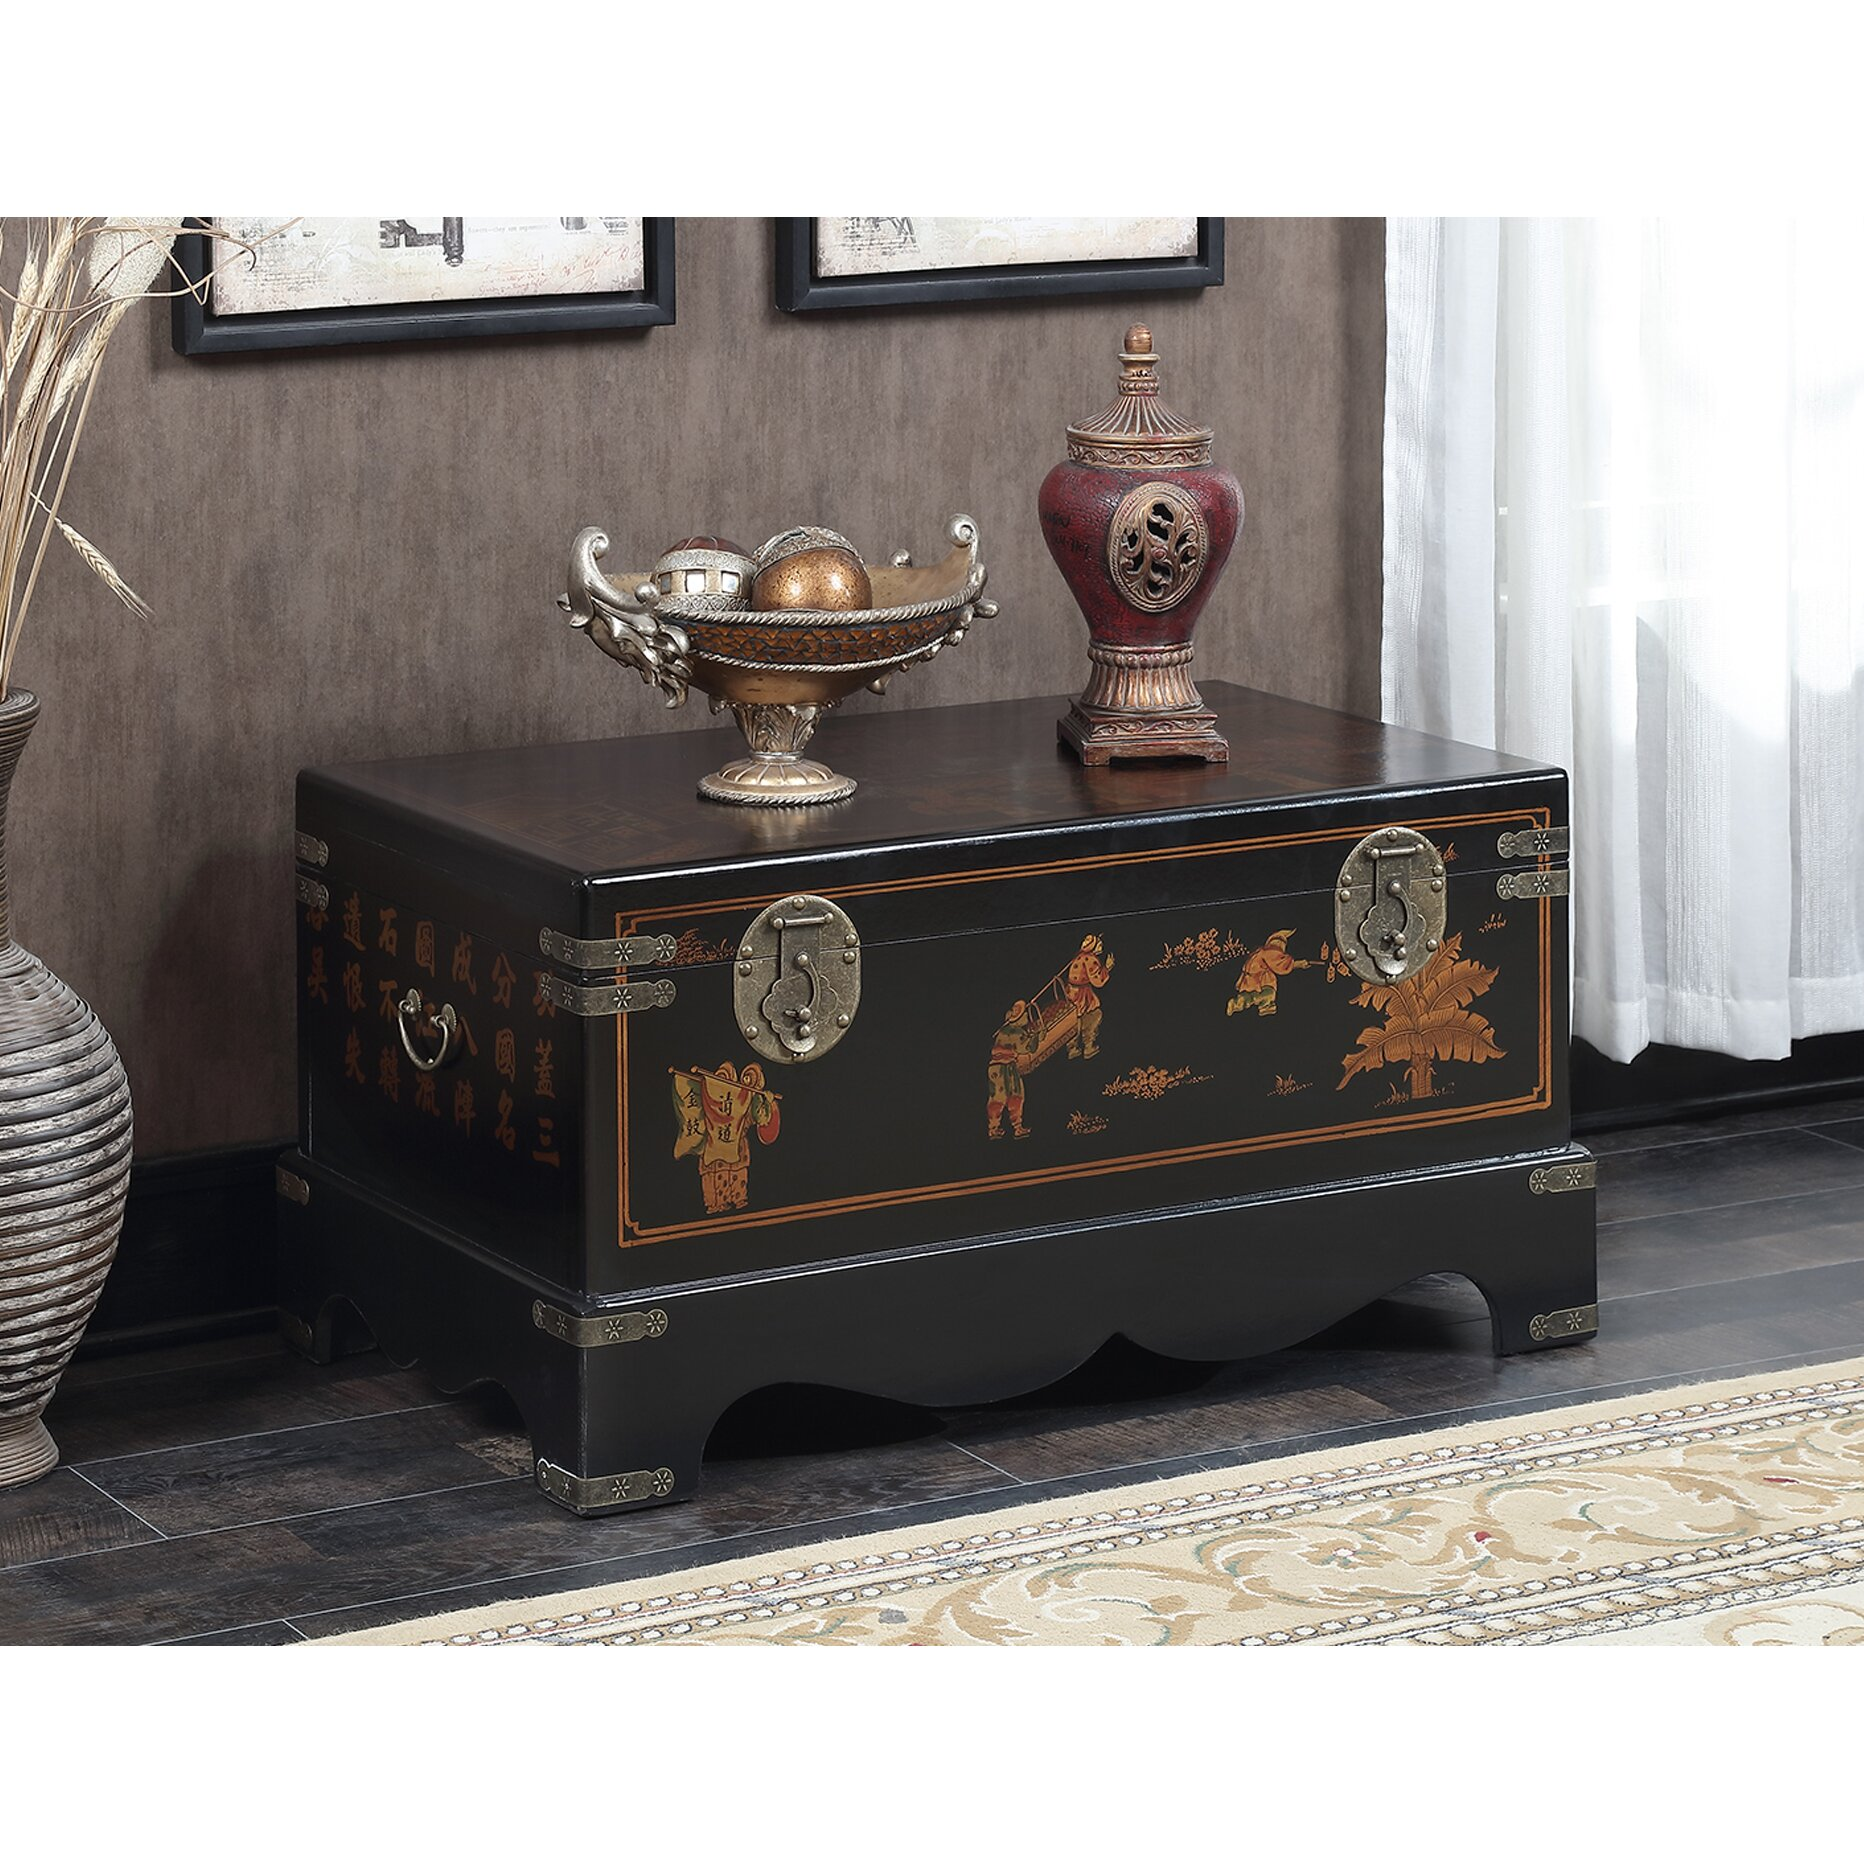 Convenience concepts touch of asia storage coffee table for Wayfair coffee tables with storage